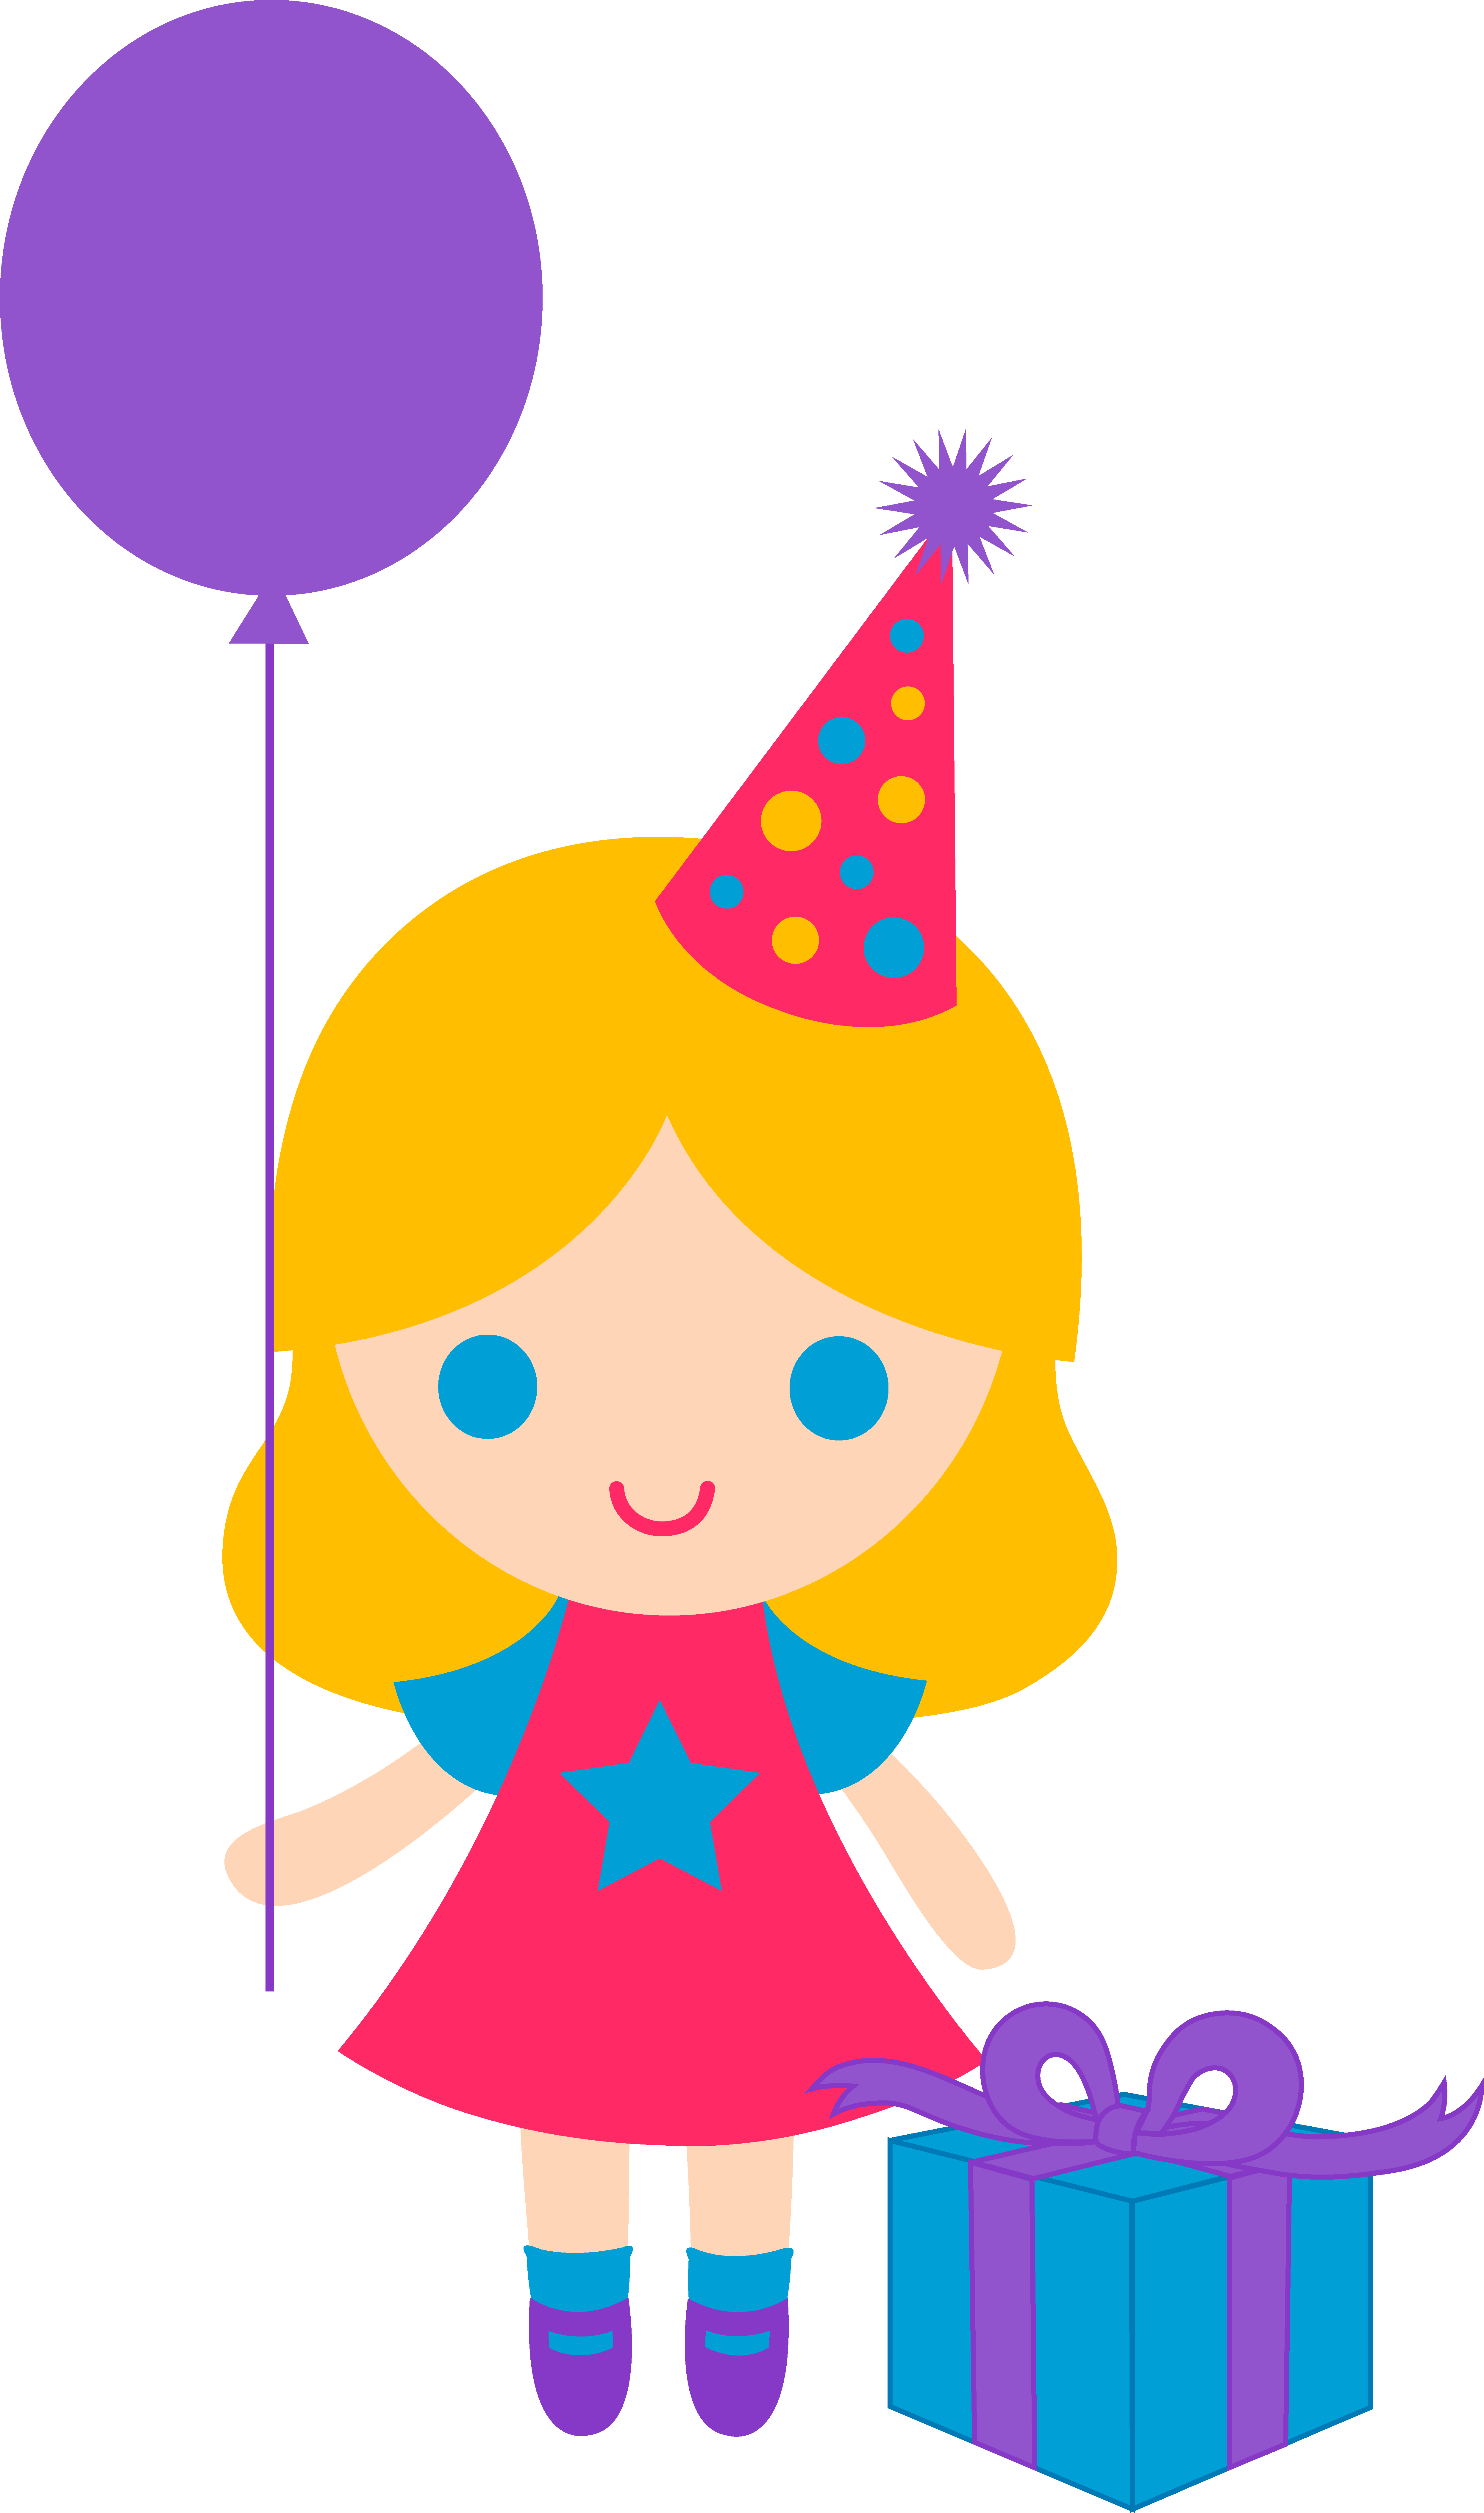 Happy Birthday Cartoon Images | Free download on ClipArtMag